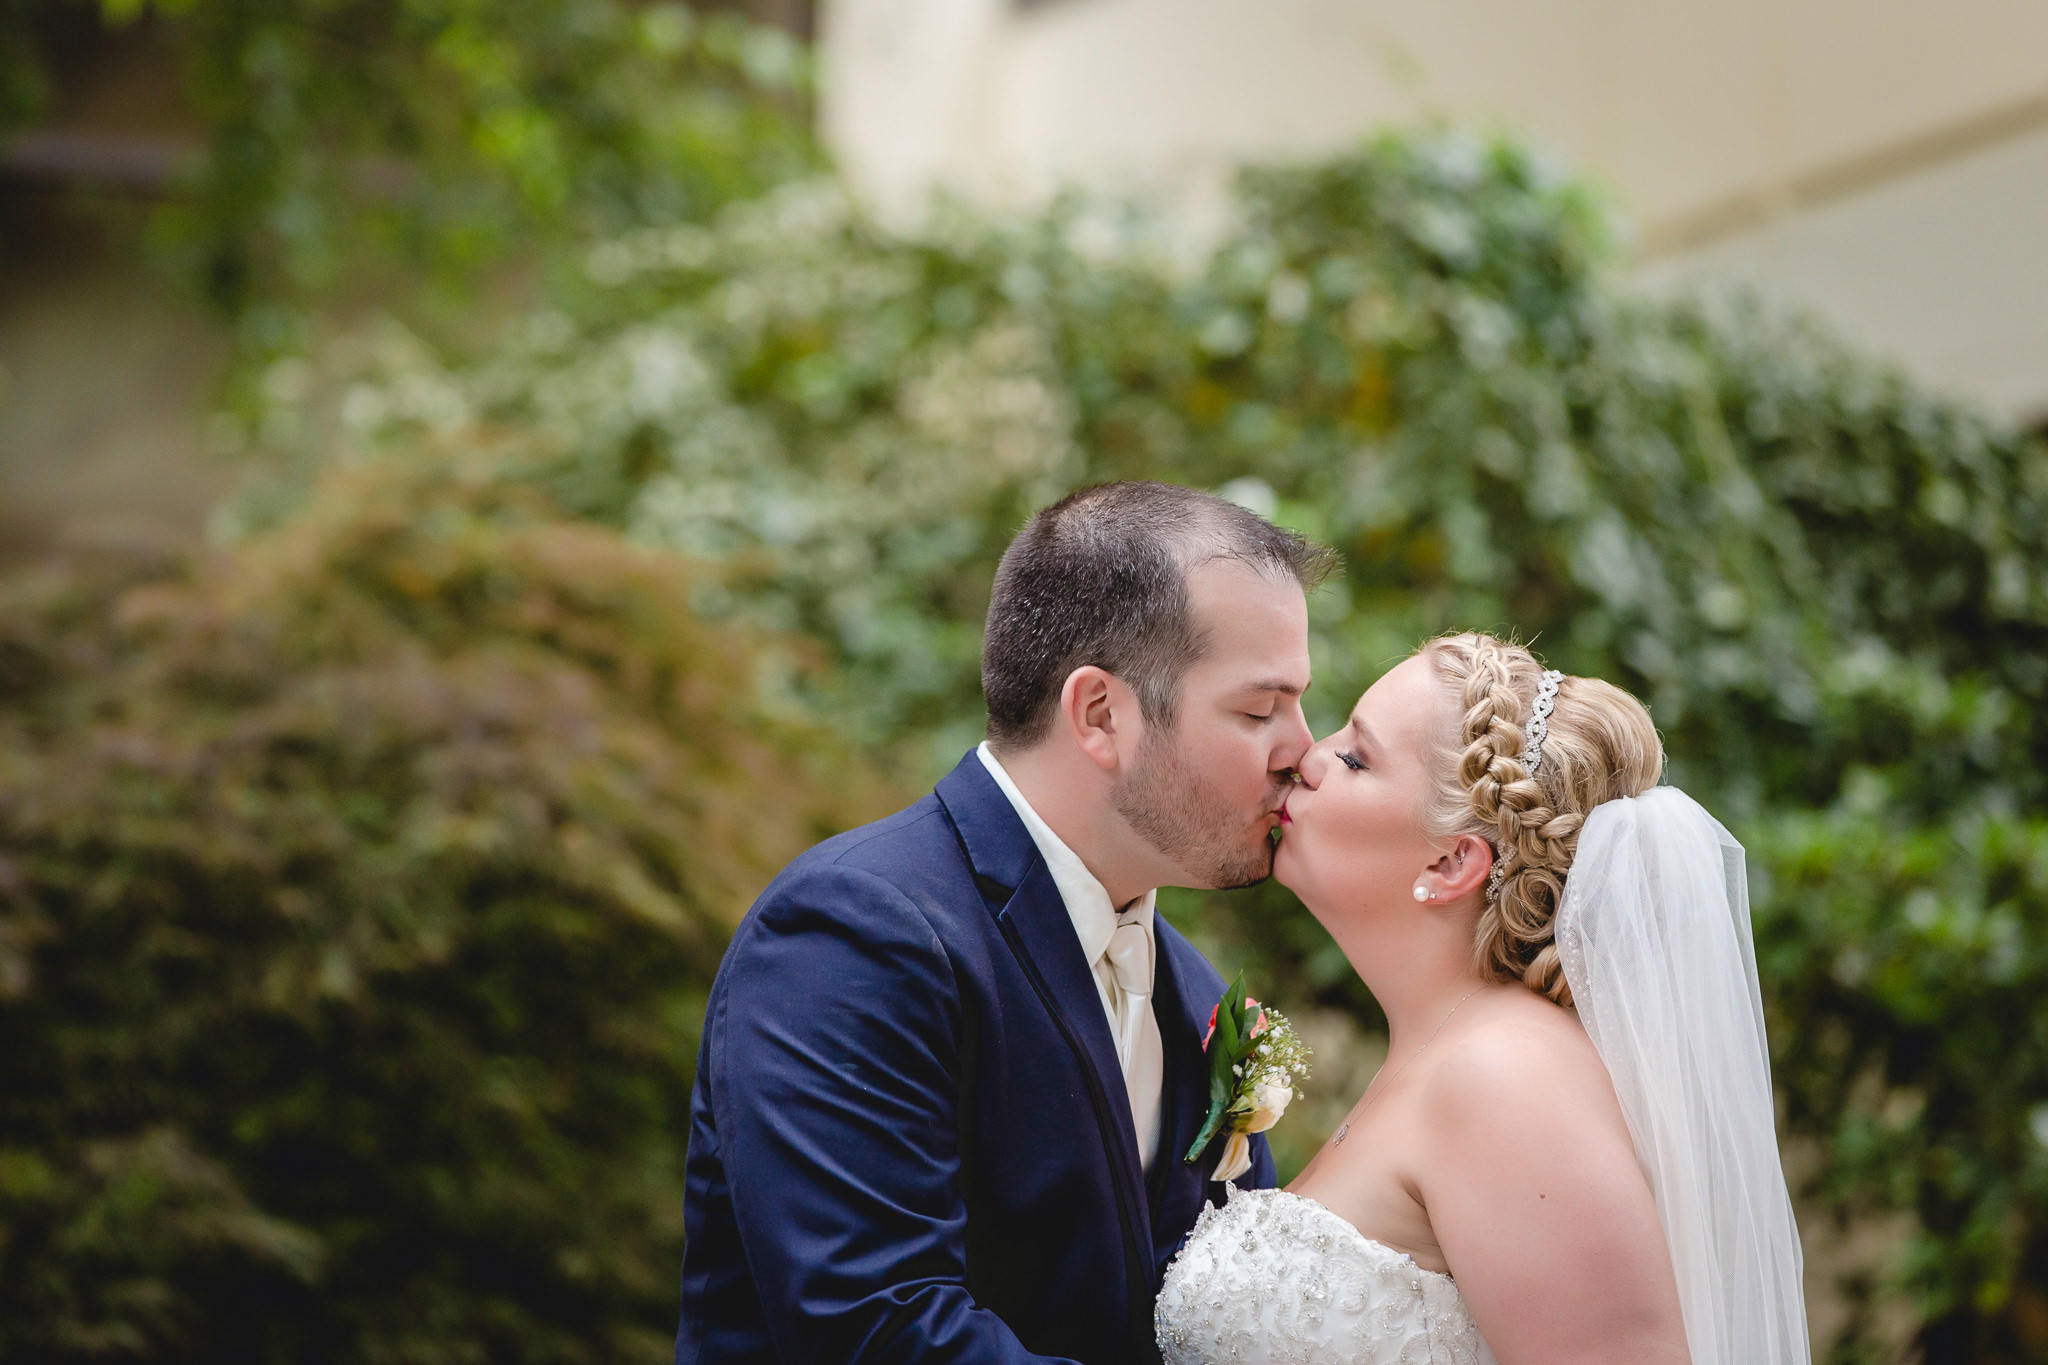 Bride and groom kiss in the courtyard of the Pittsburgh Airport Marriott